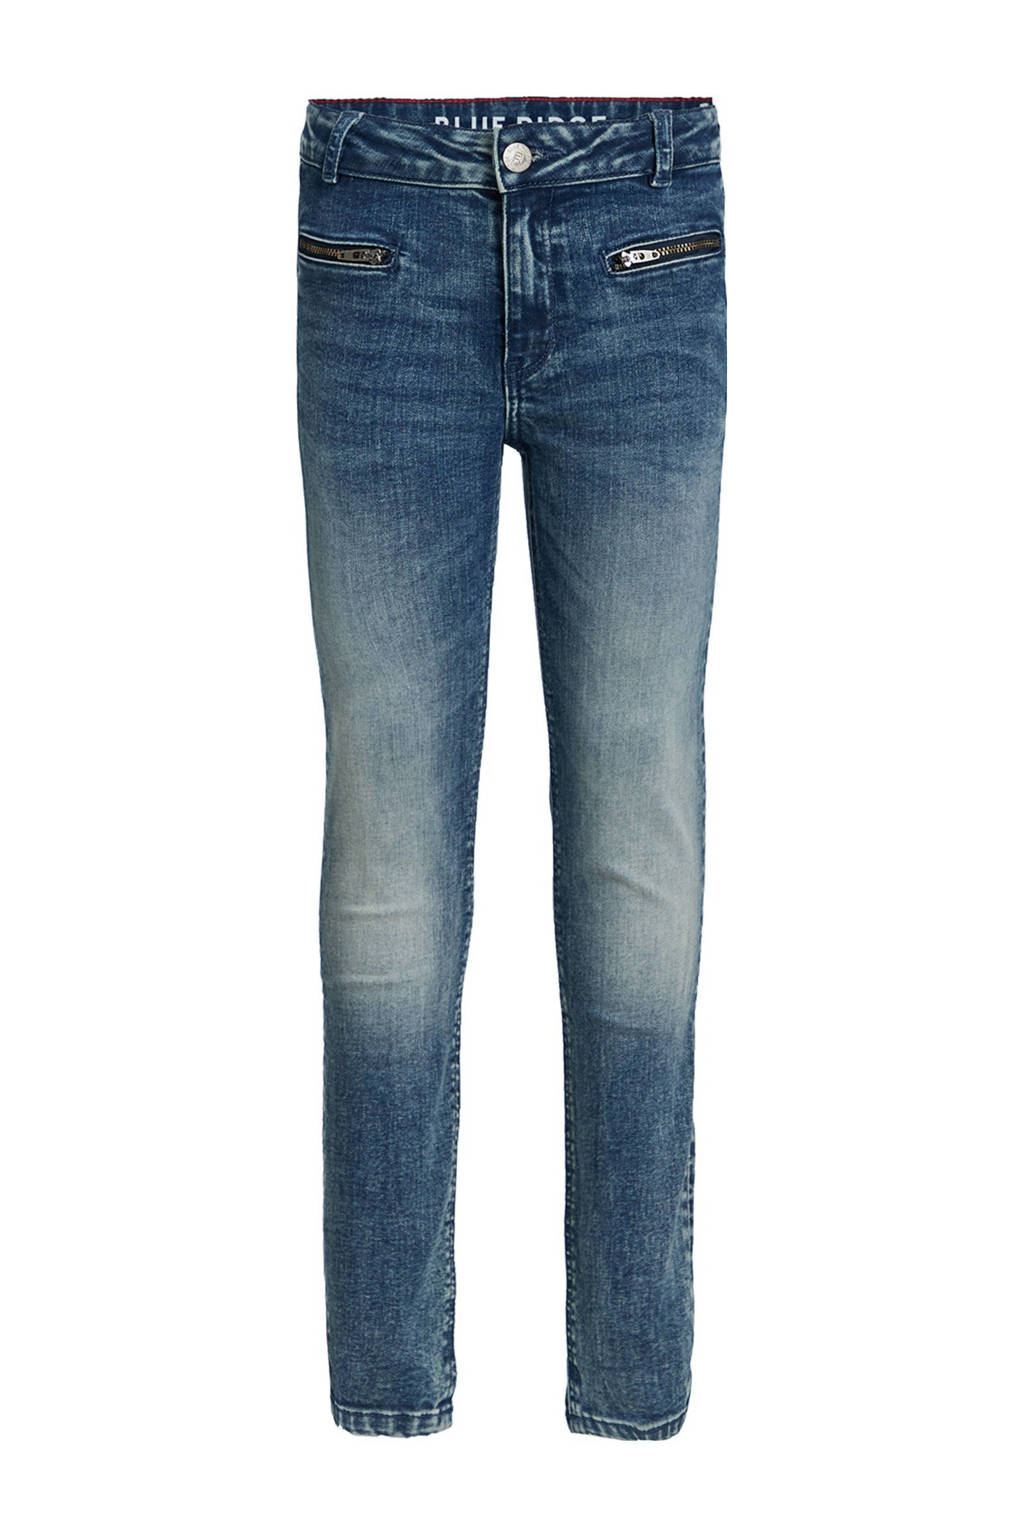 WE Fashion Blue Ridge super skinny jeans Bella Jade stonewashed, Stonewashed